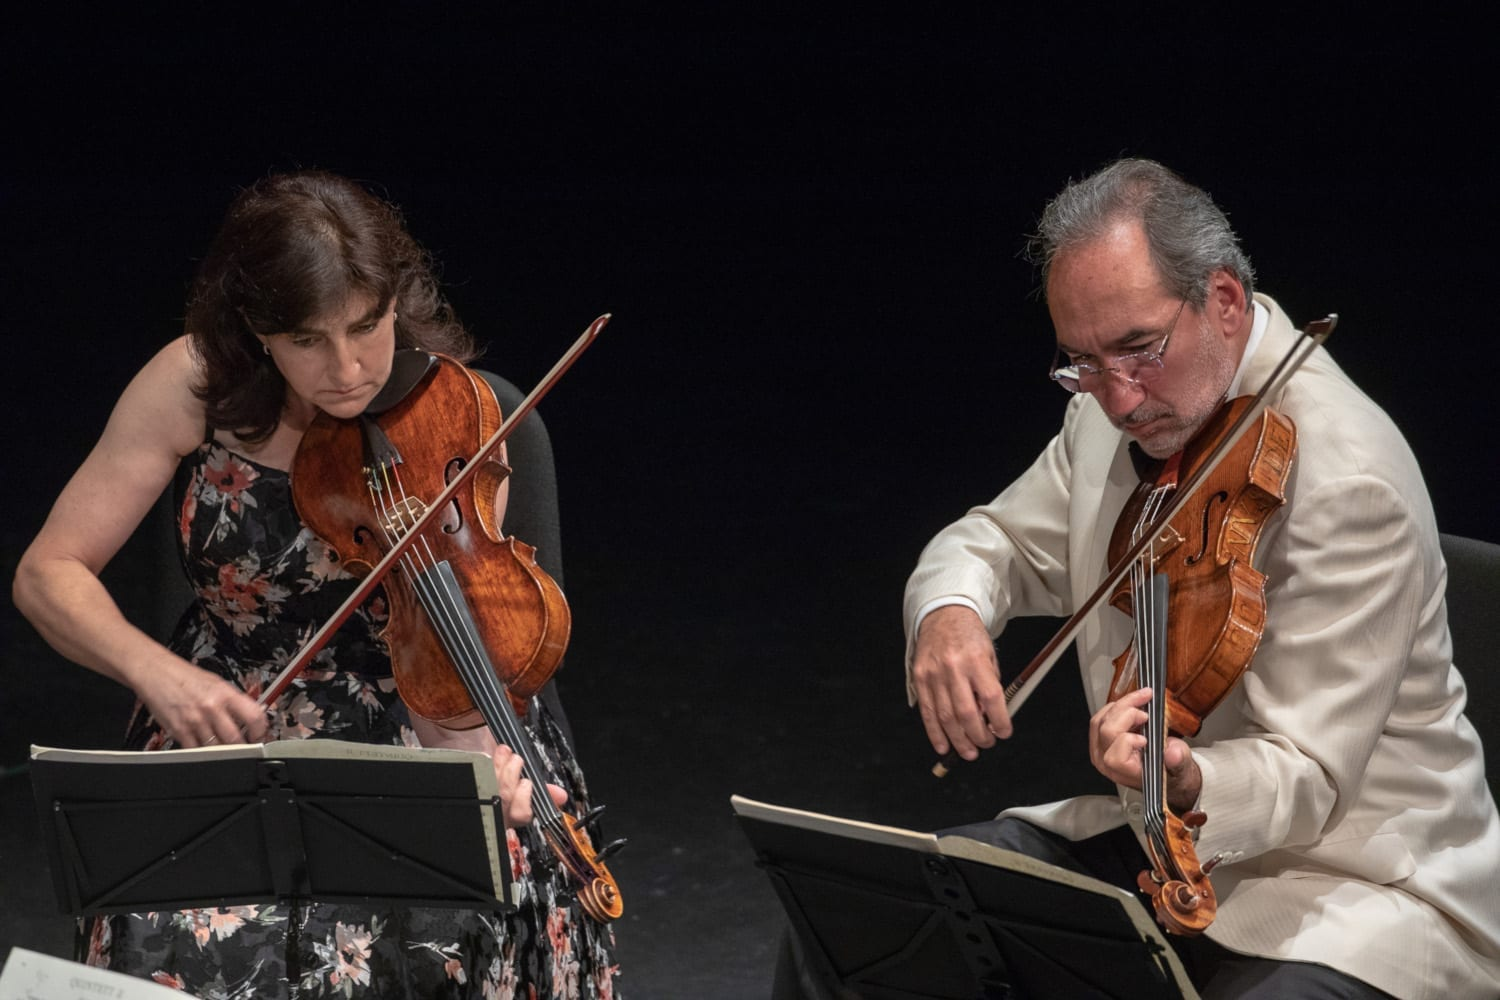 Aloysia Friedmann and Toby Hoffman - Photo Credit Barry Carlton